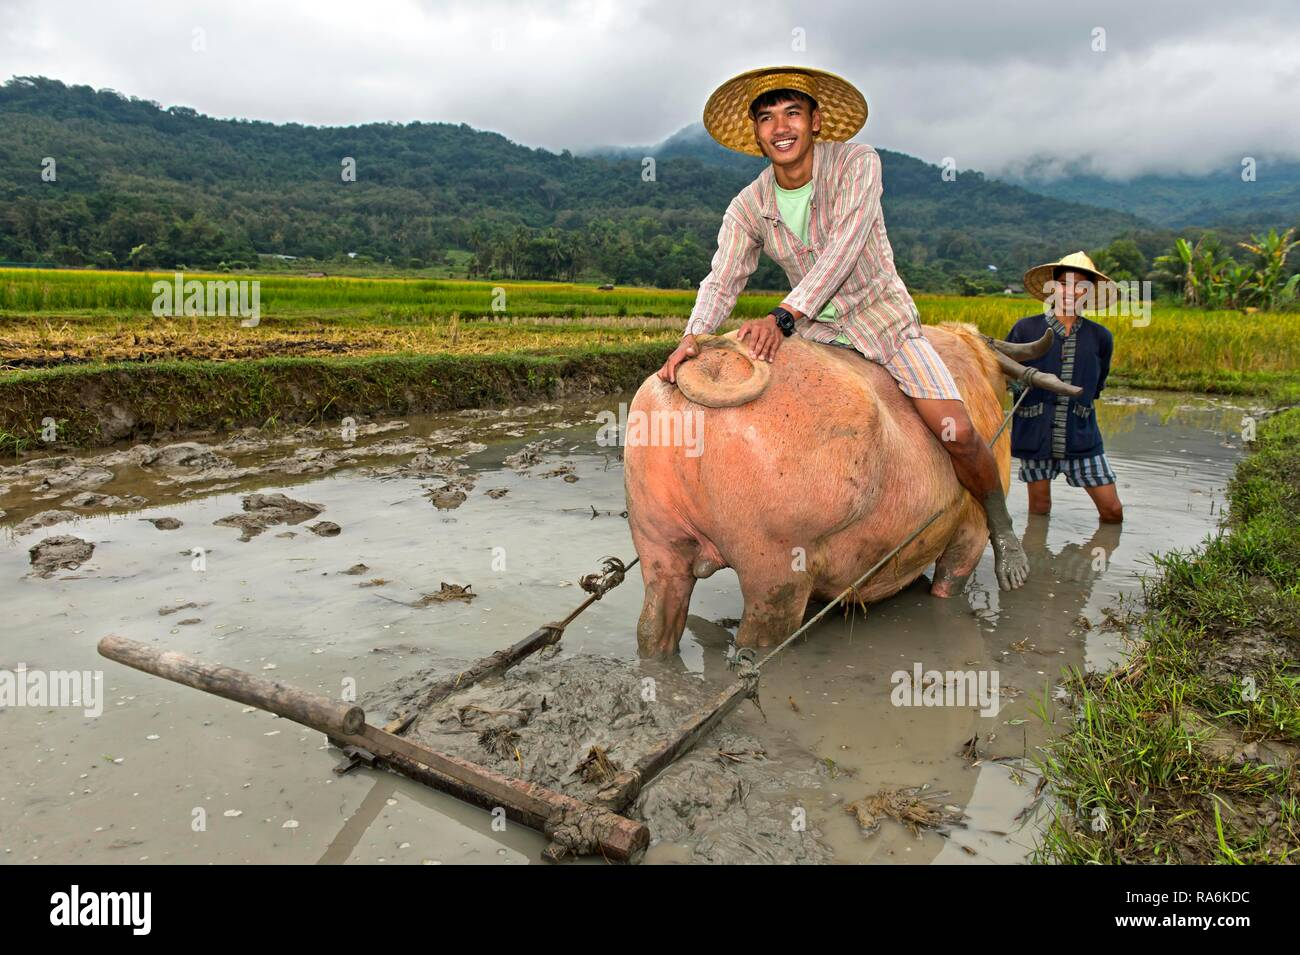 Young man sitting on a water buffalo in a rice field, Living Land Farm Project, Luang Prabang, Laos - Stock Image